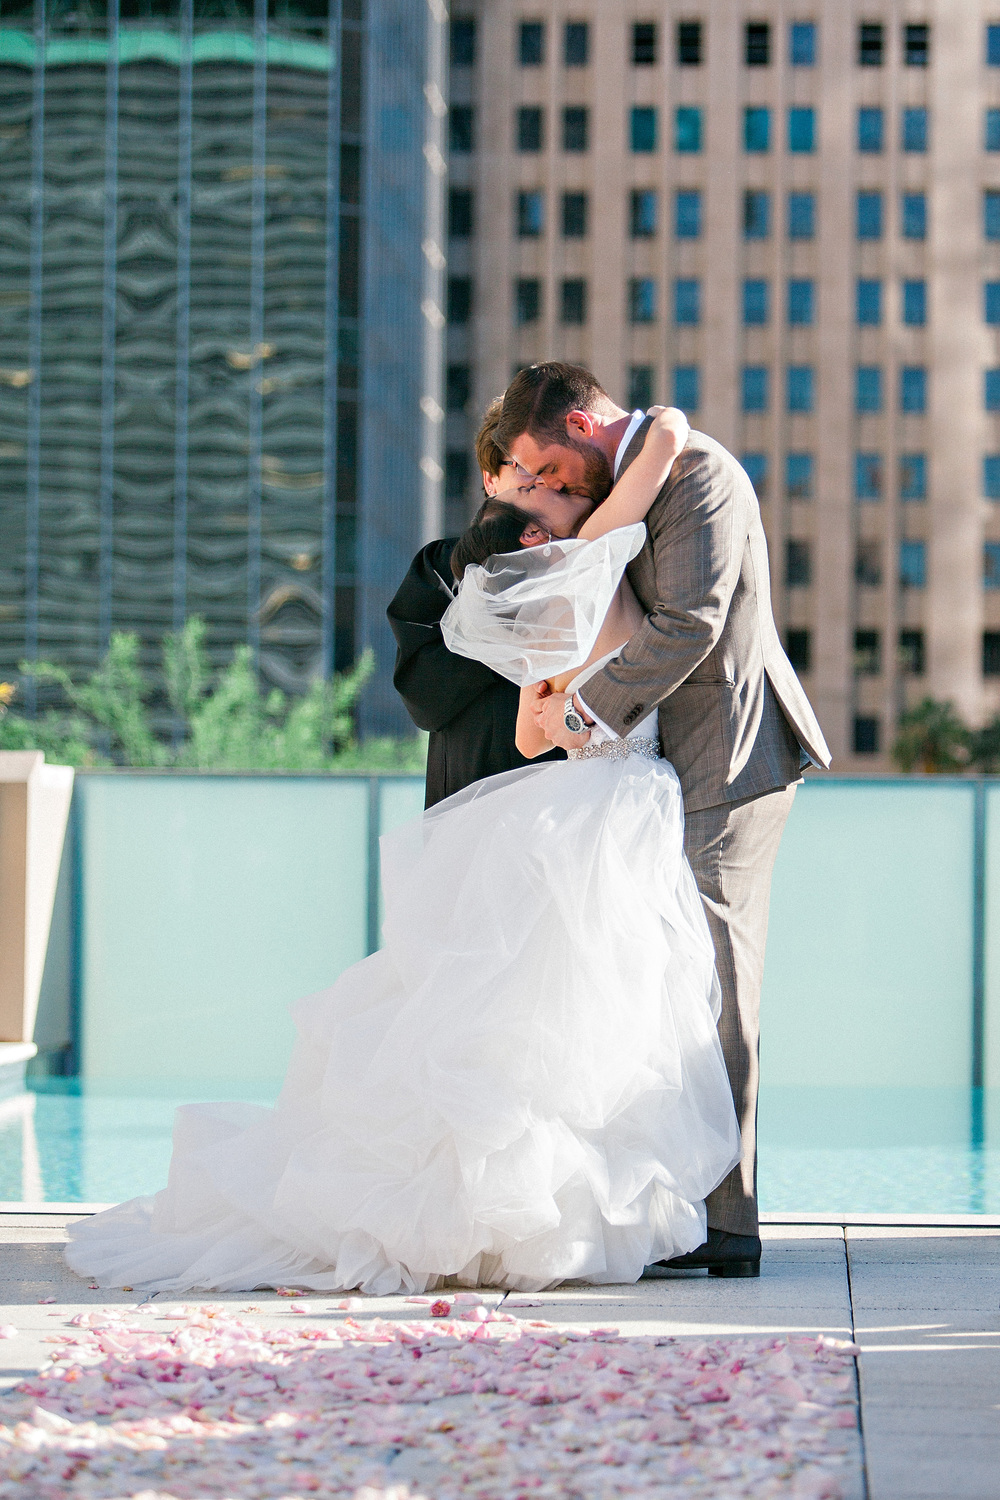 hesketh_0388.jpg